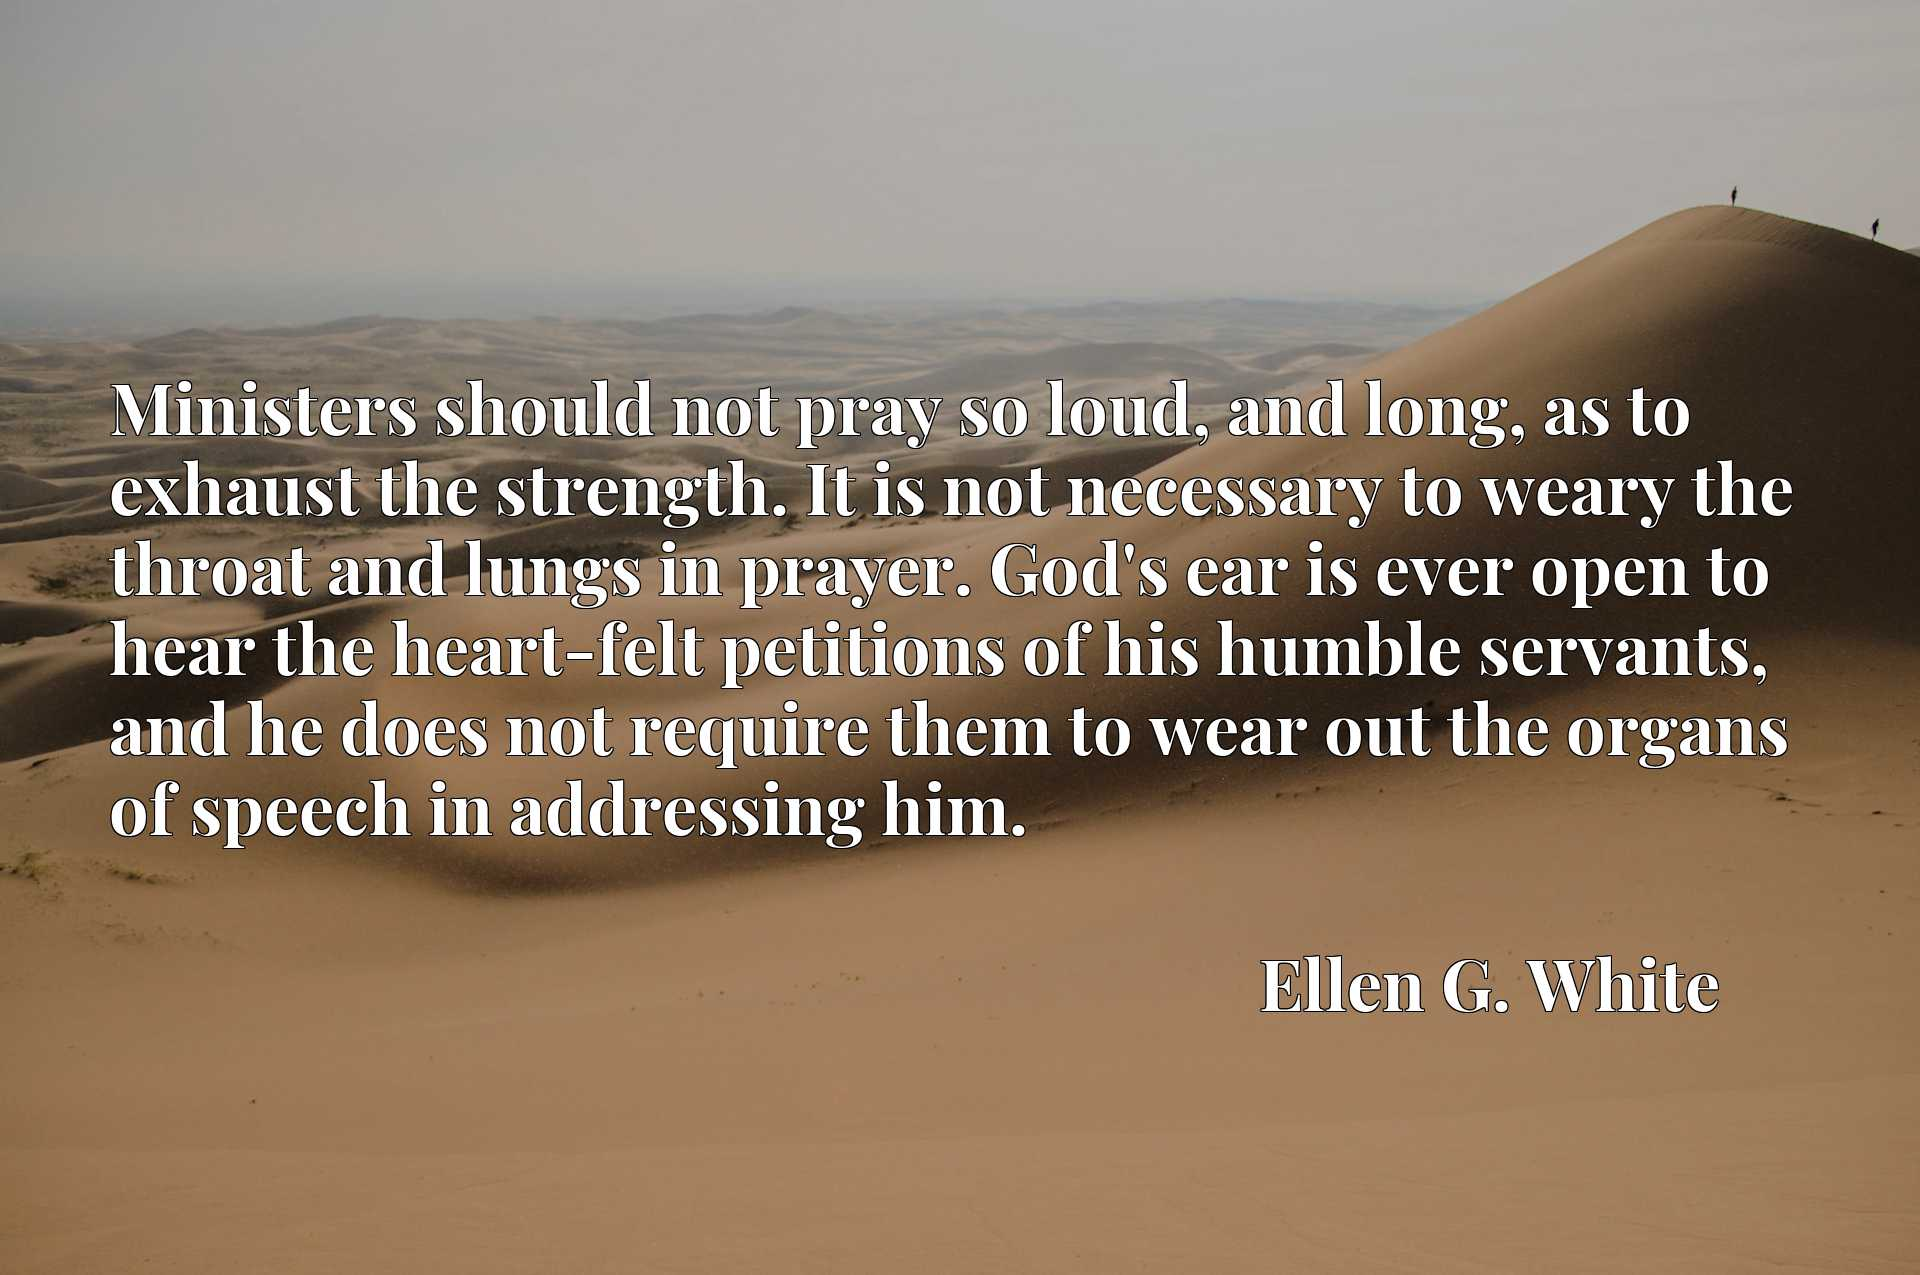 Ministers should not pray so loud, and long, as to exhaust the strength. It is not necessary to weary the throat and lungs in prayer. God's ear is ever open to hear the heart-felt petitions of his humble servants, and he does not require them to wear out the organs of speech in addressing him.